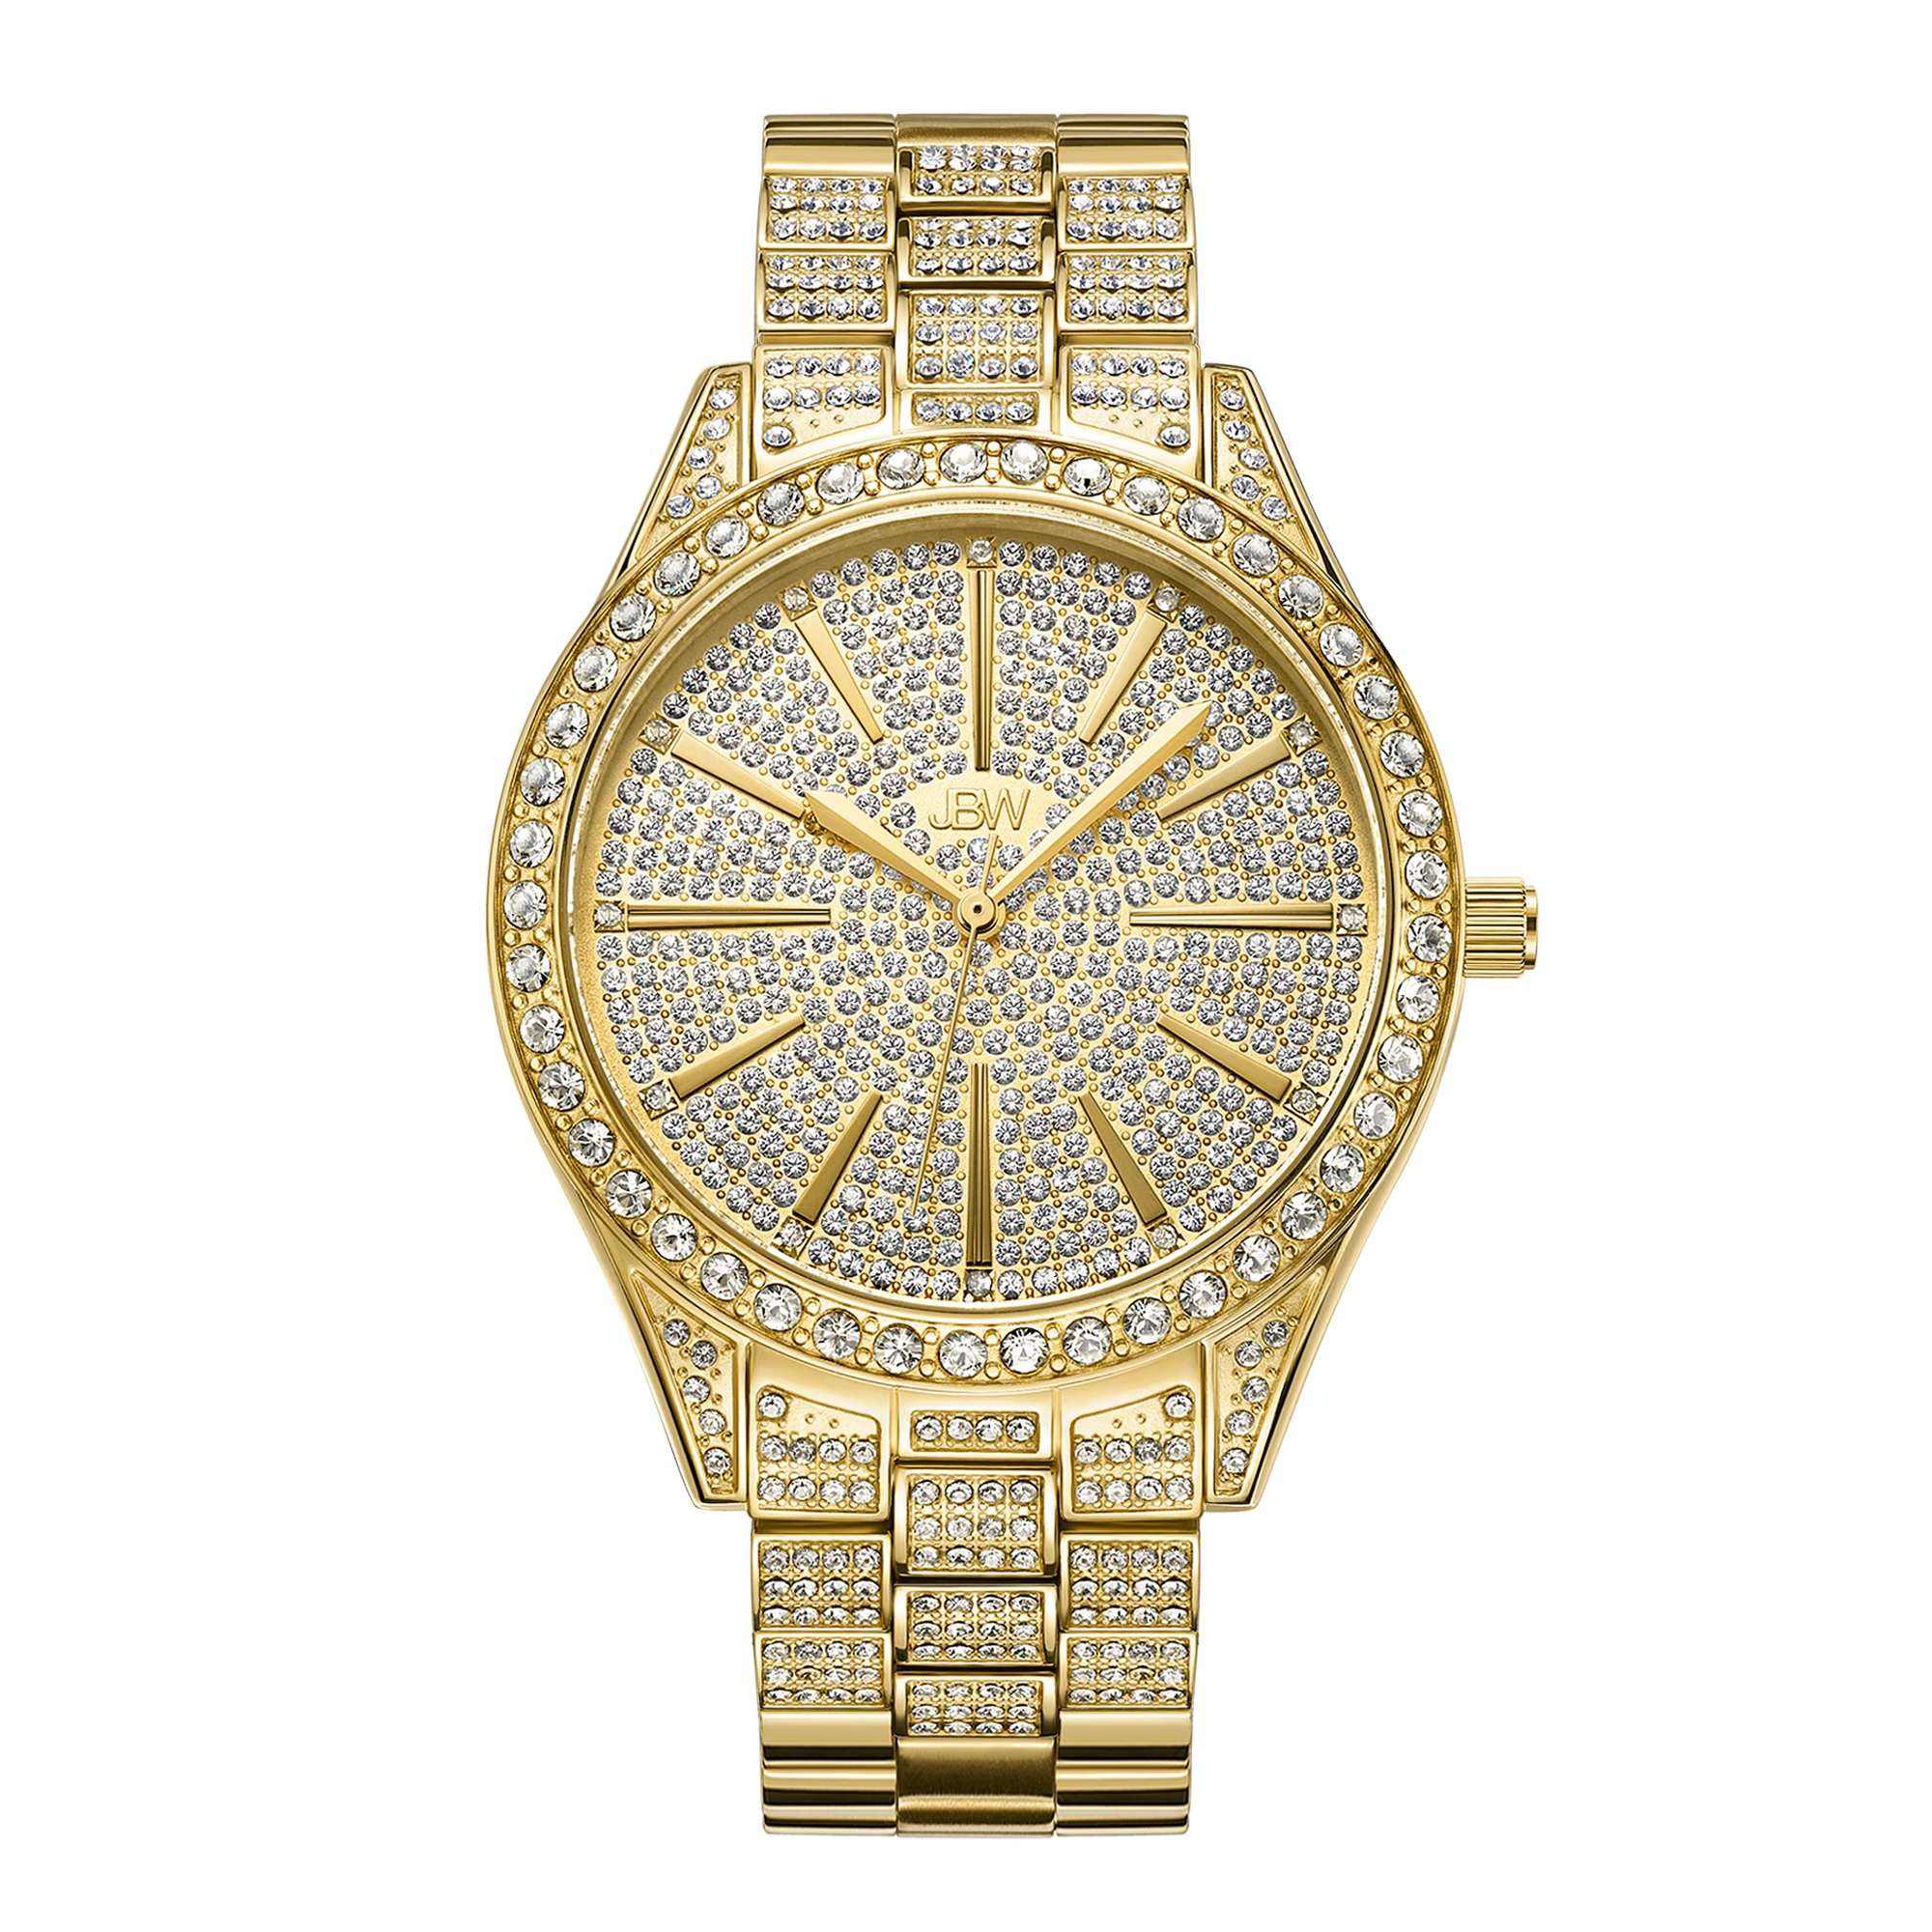 Jbw Cristal Quartz Crystal Gold Crystal Pave Dial Ladies Watch J6346a In Gold Tone